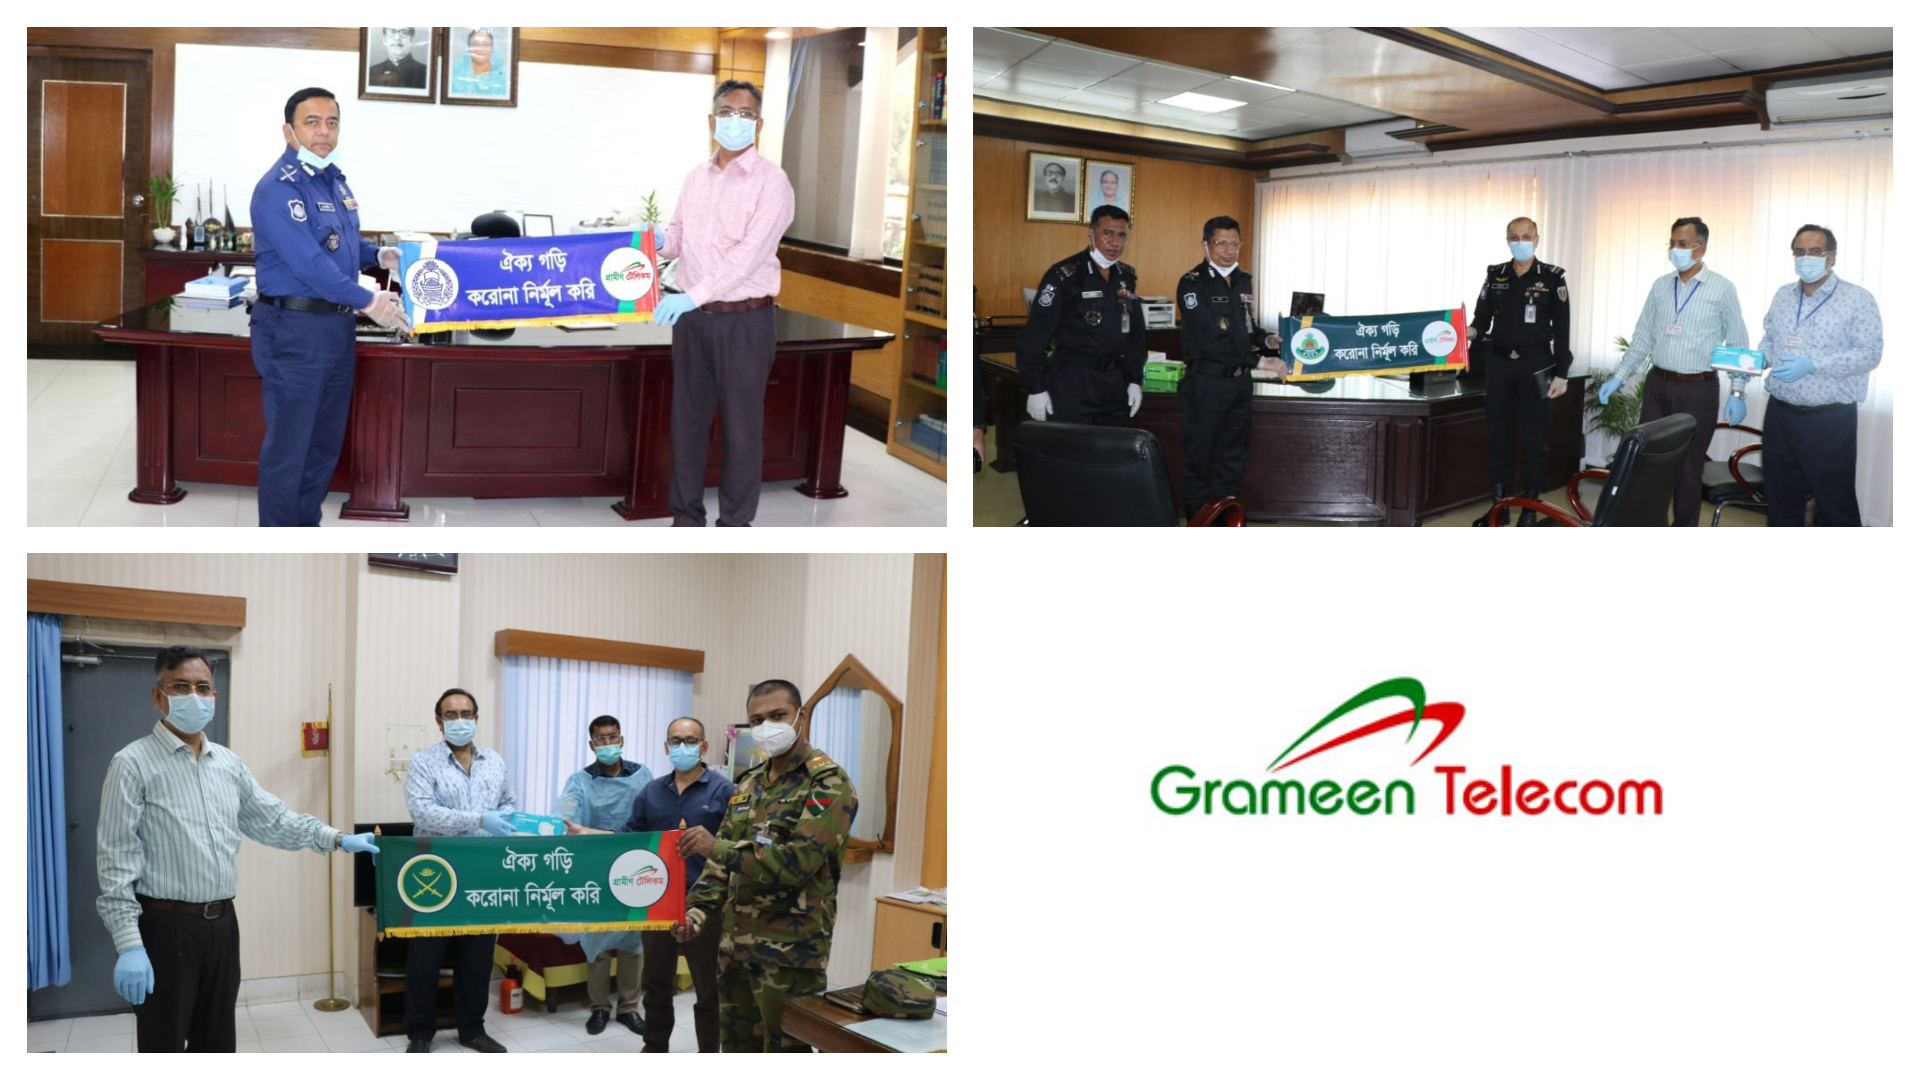 Grameen Telecom Provides Masks and PPEs to the Police, Army and RAB